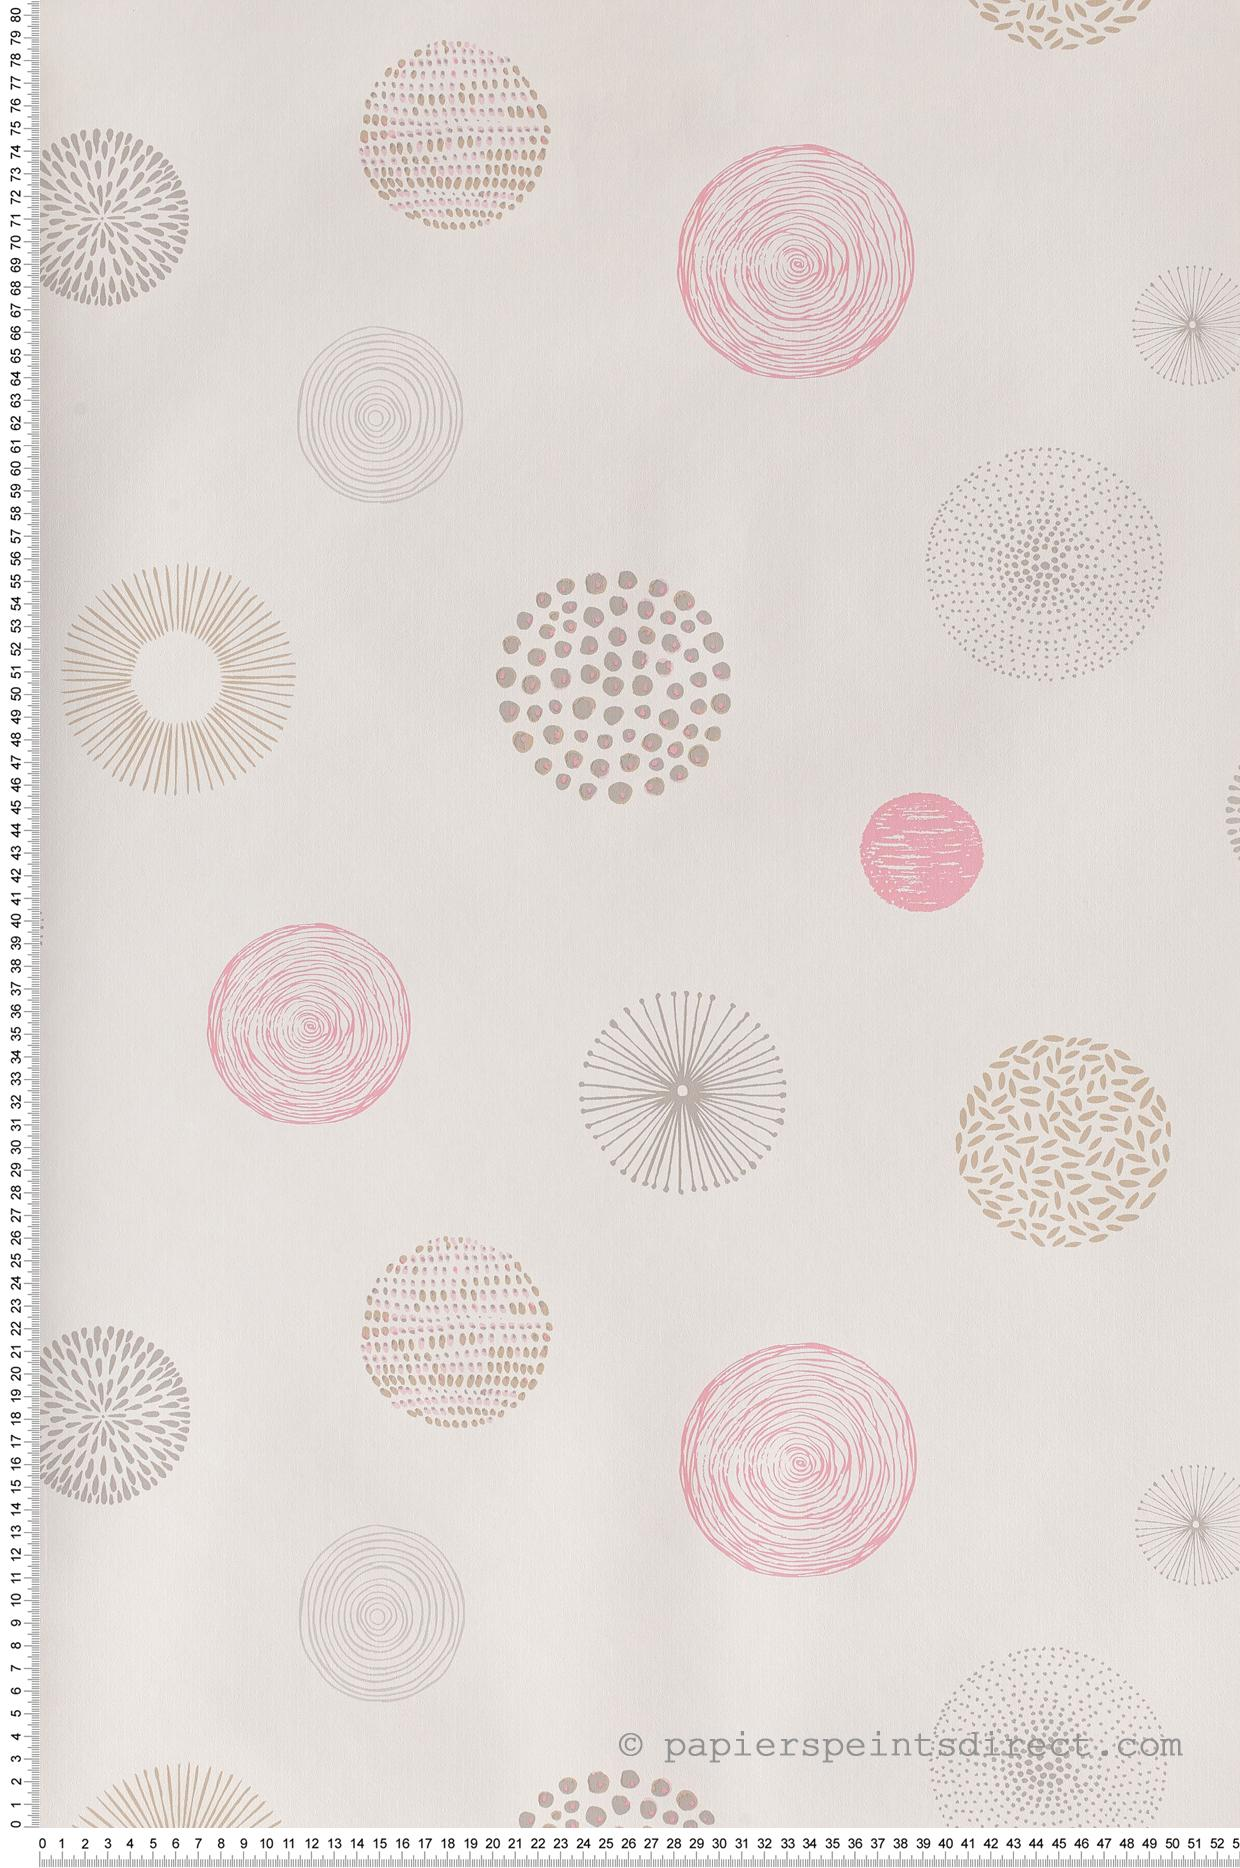 Cercles graf rose-beige - Collection Pretty Lili de Casélio